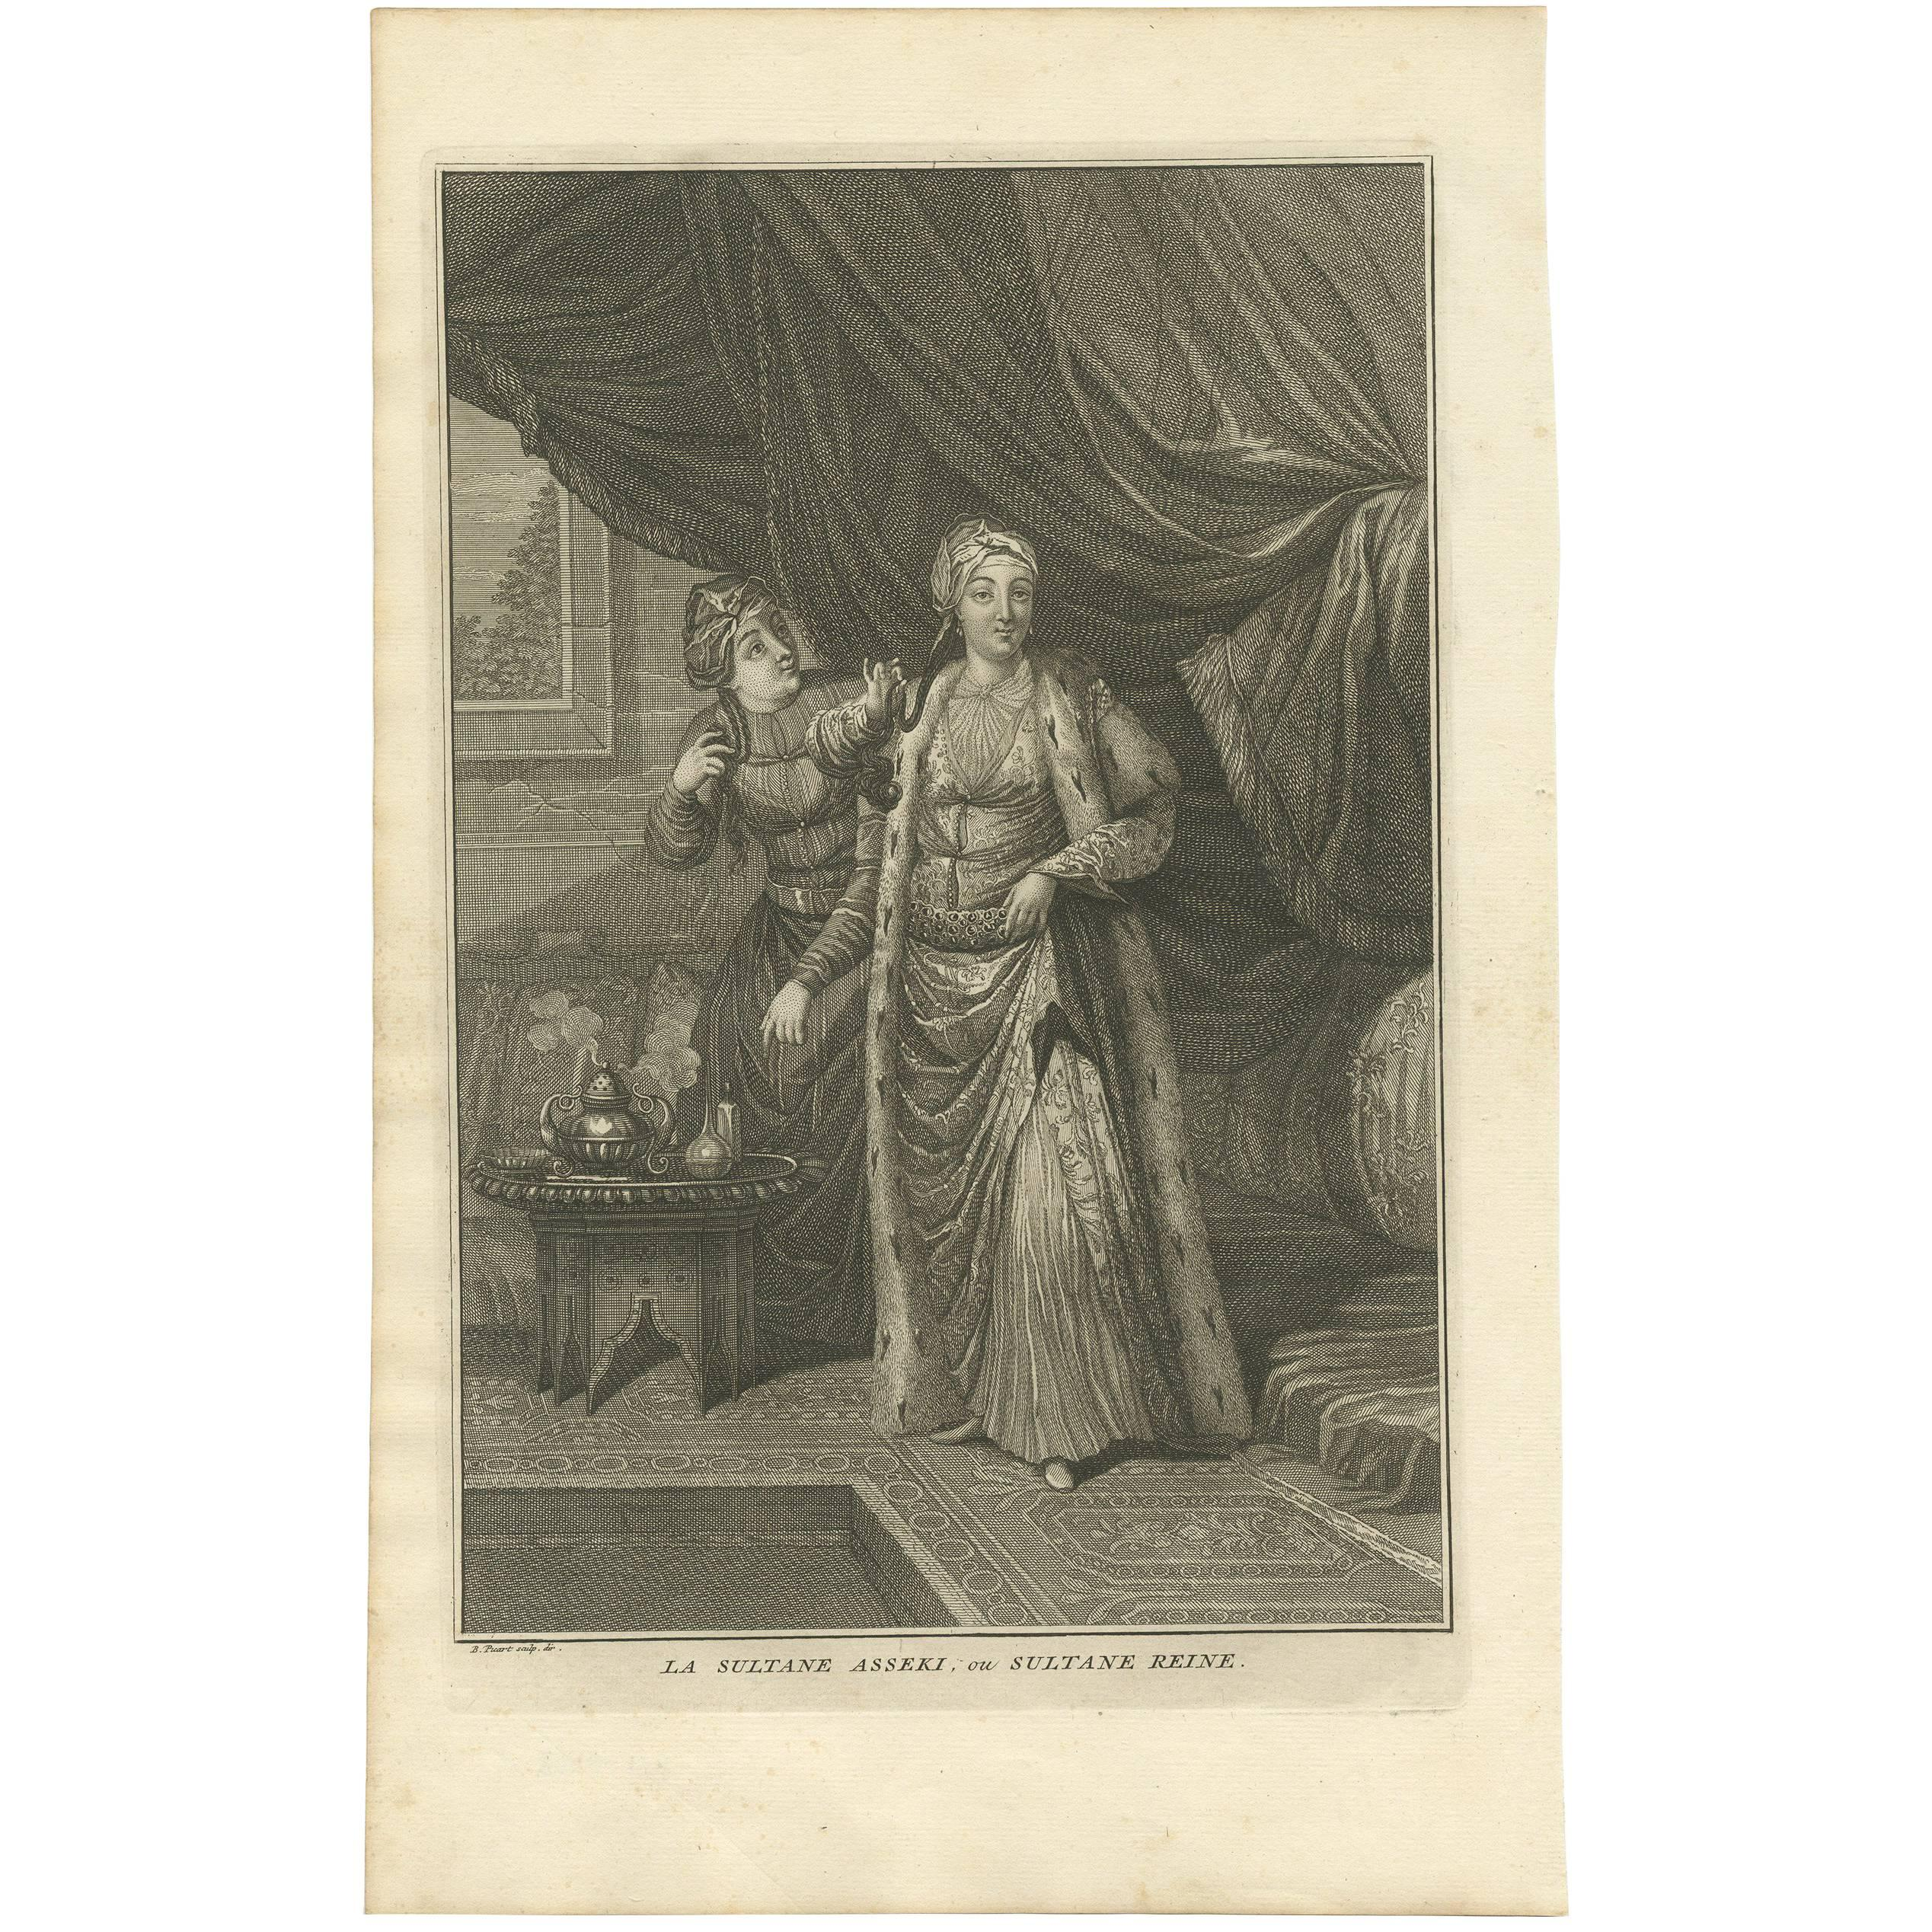 Antique Print of the Sultan Asseki with a Servant Maid by B. Picart, circa 1725